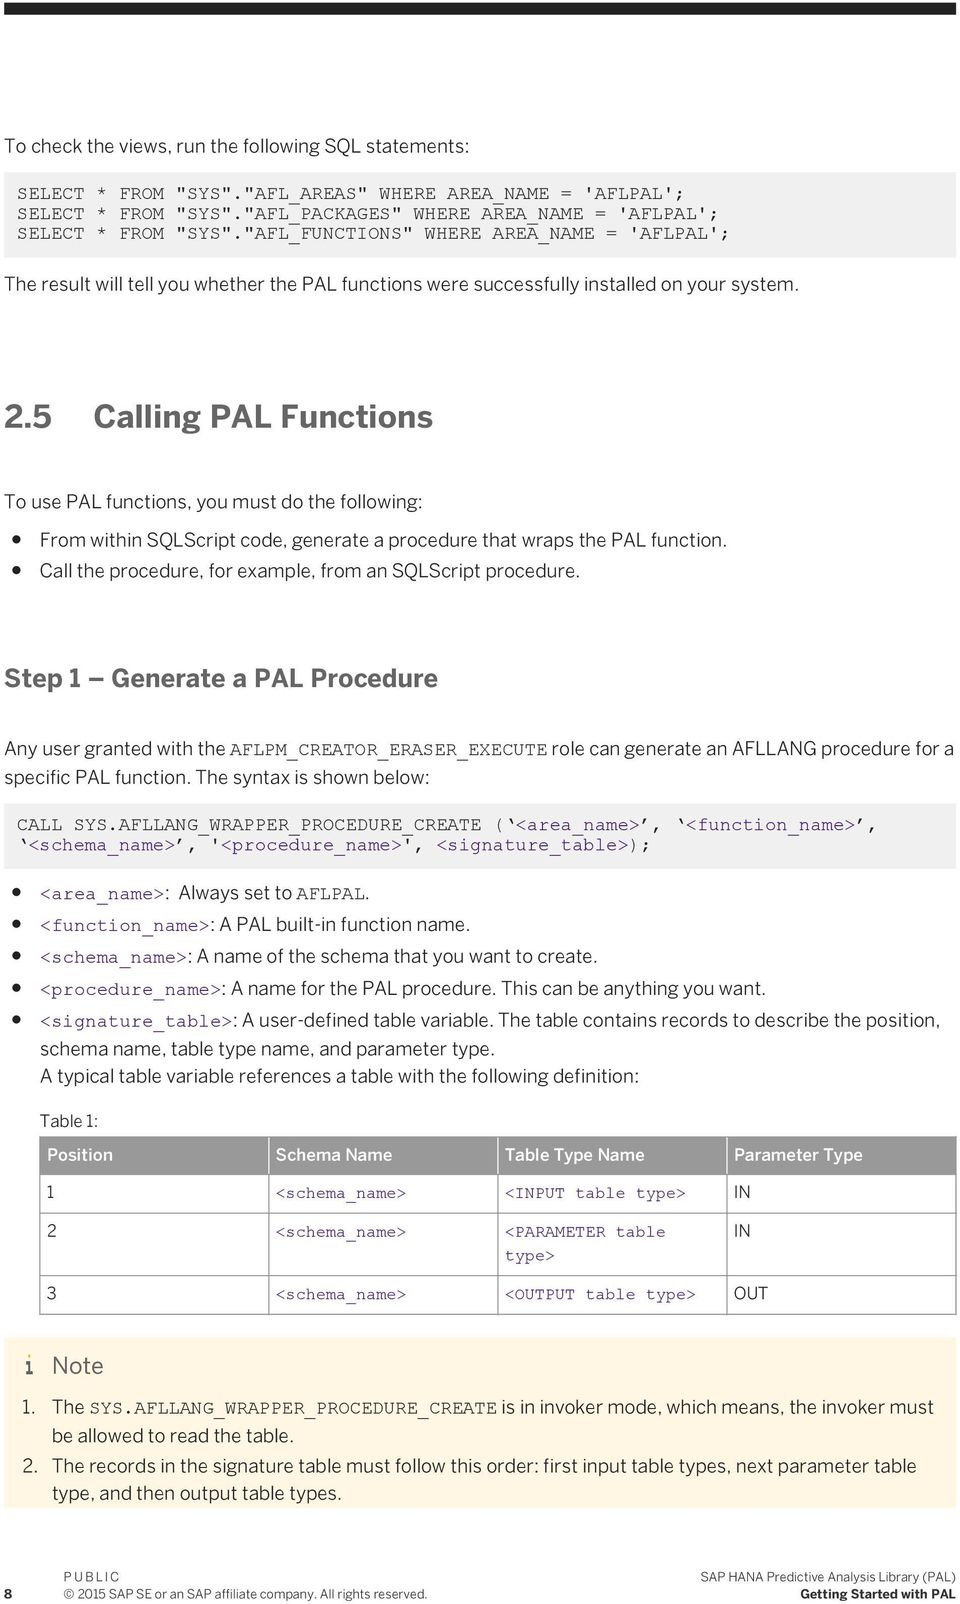 5 Calling To use PAL functions, you must do the following: From within SQLScript code, generate a procedure that wraps the PAL function. Call the procedure, for example, from an SQLScript procedure.